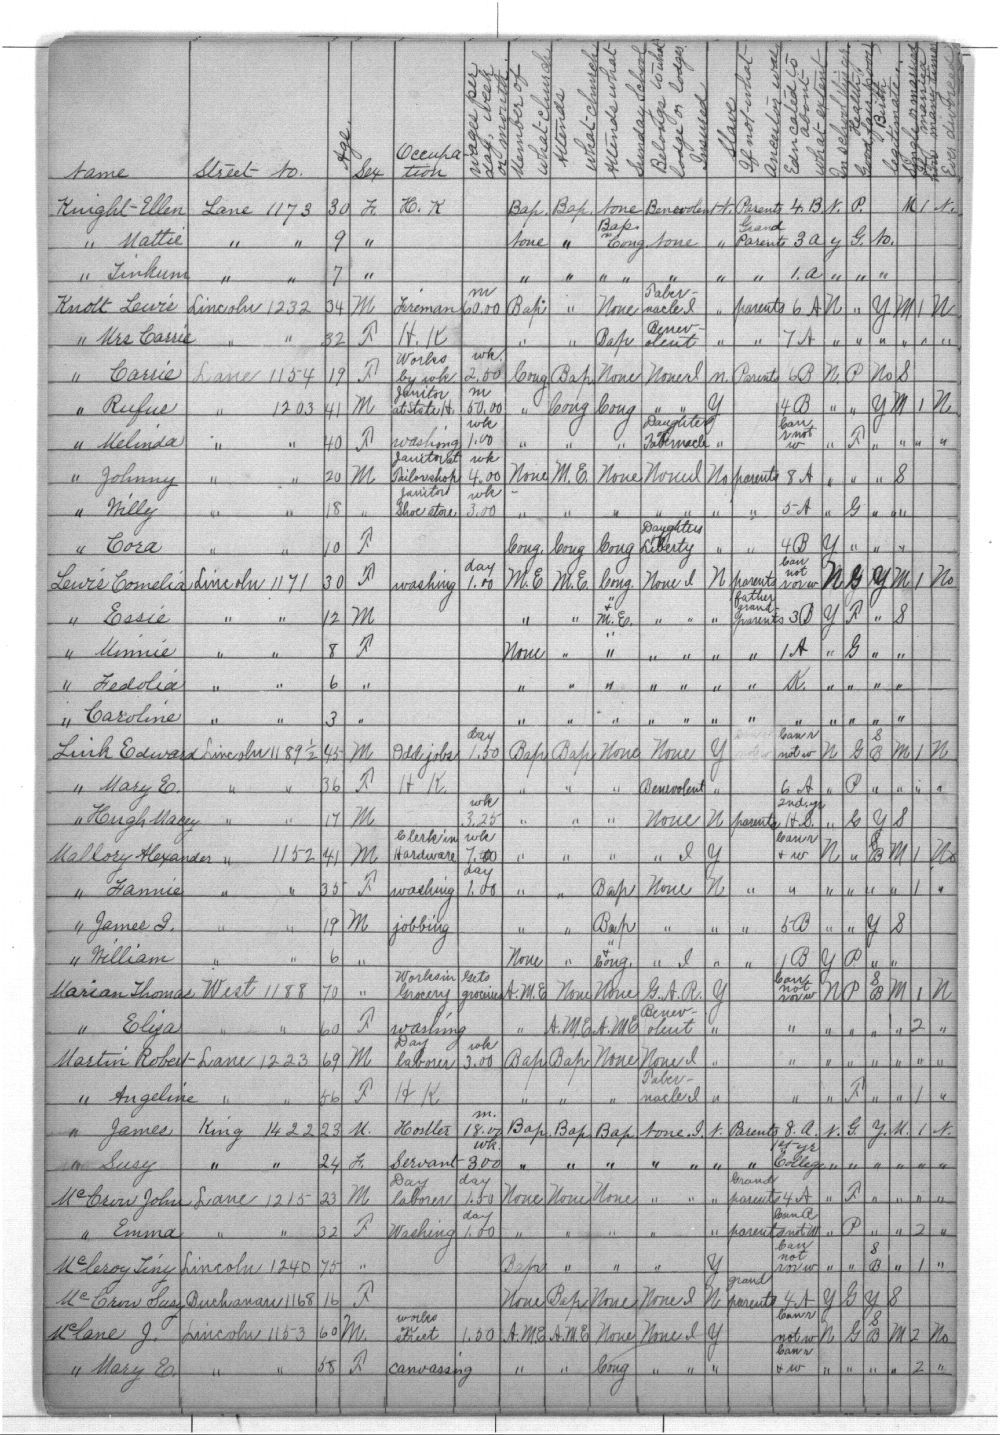 Tennessee Town census - 8